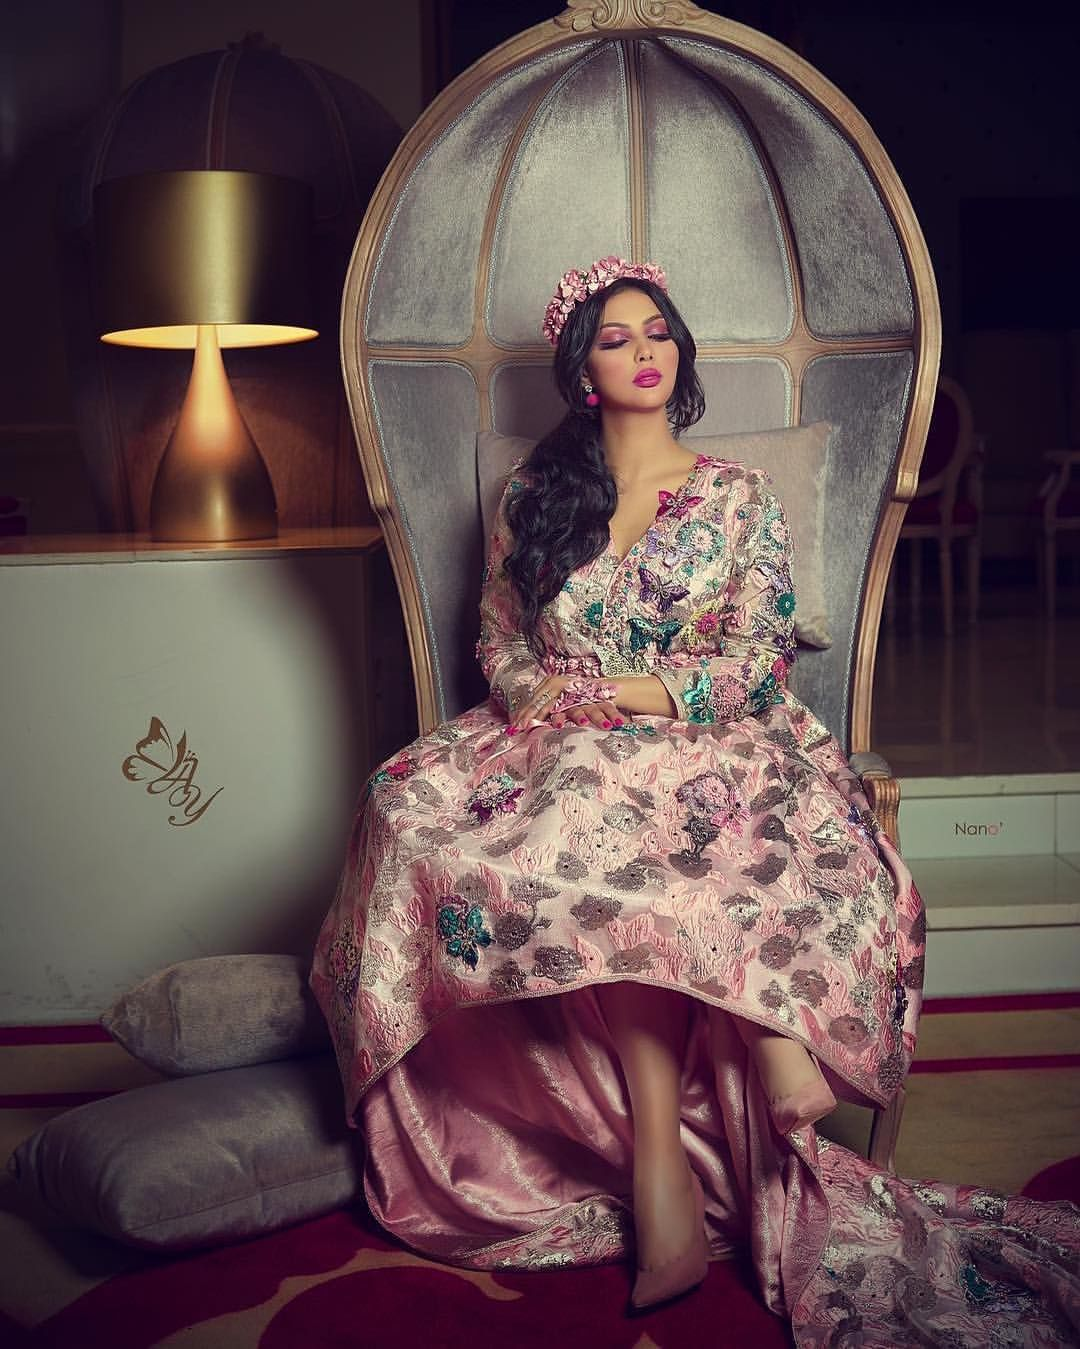 Ibtissam Tiskat On Instagram From My Last Shooting I Love U All Dressed By Styliste Abir El Dresses Moroccan Fashion Most Beautiful Indian Actress